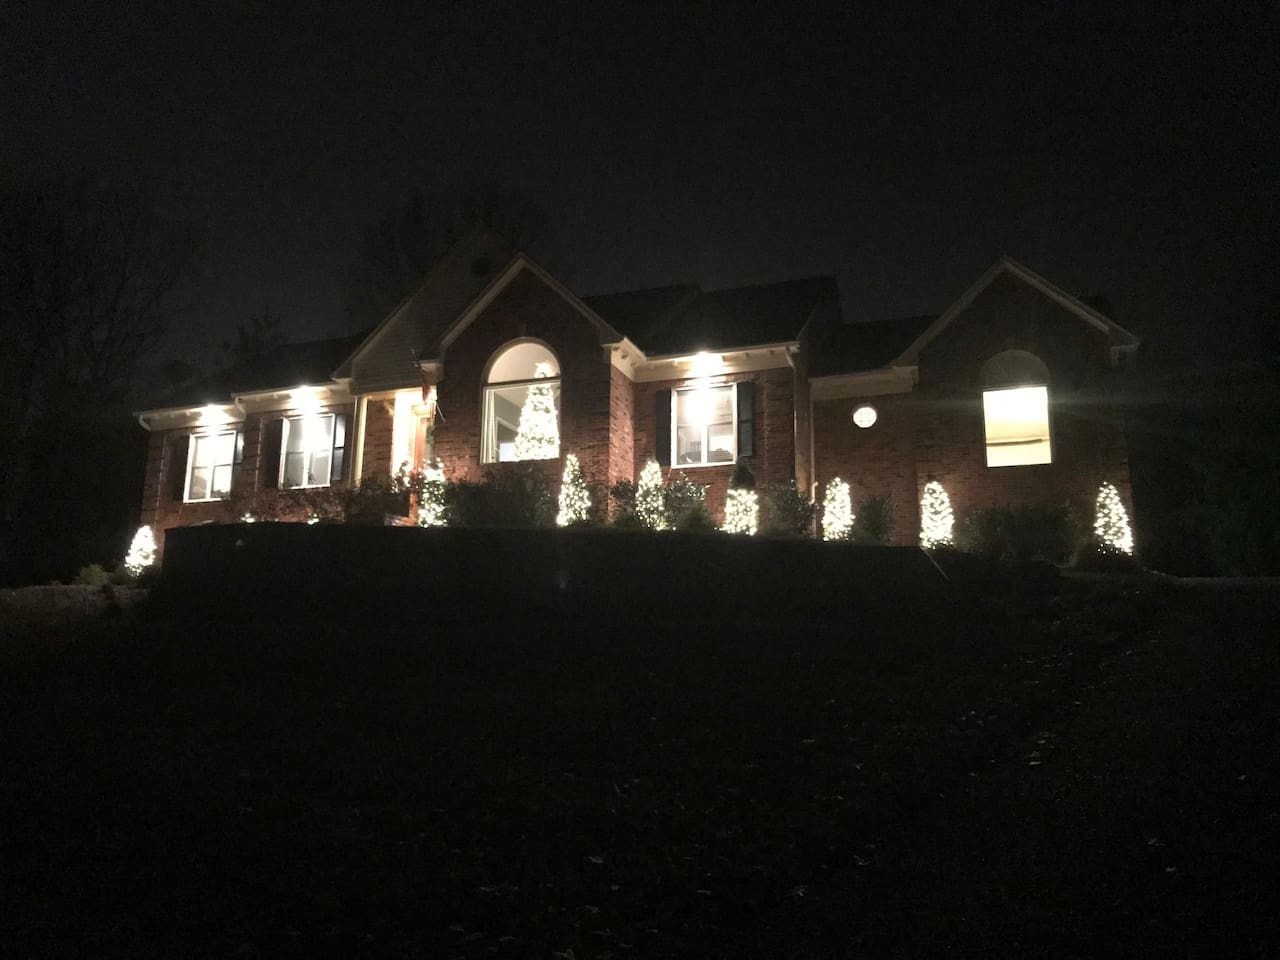 View of front of house from driveway at Christmastime